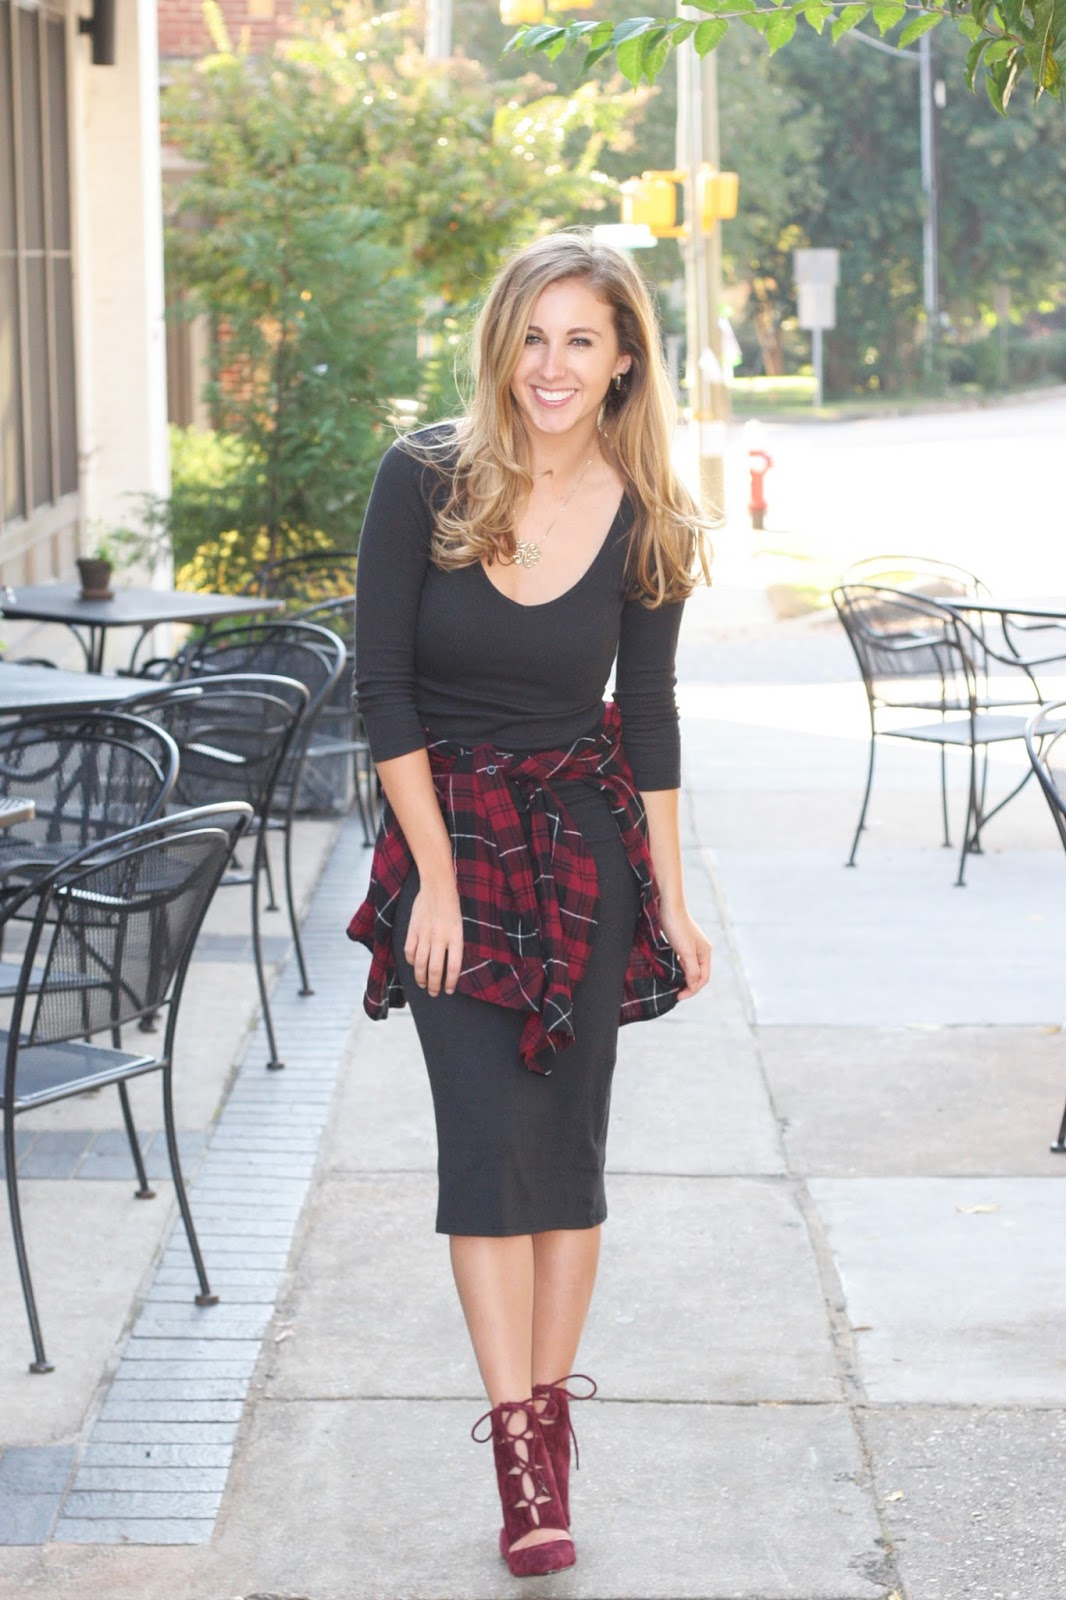 How-to-style-a-midi-dress-for-fall